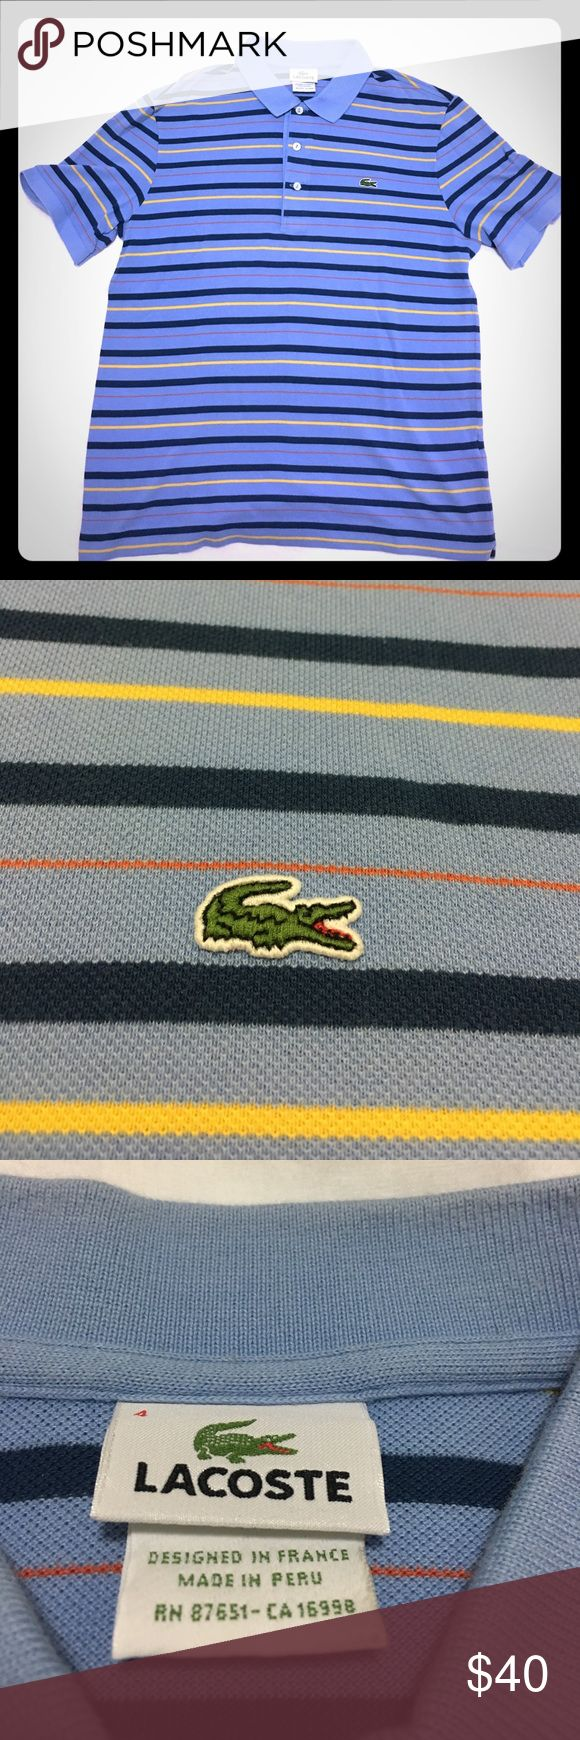 Men's Lacoste blue striped polo shirt size 4 Men's Lacoste blue striped polo shirt size 4. The size is the old version of their sizes. I would say that the shirt fits like a smaller medium. Lacoste Shirts Polos